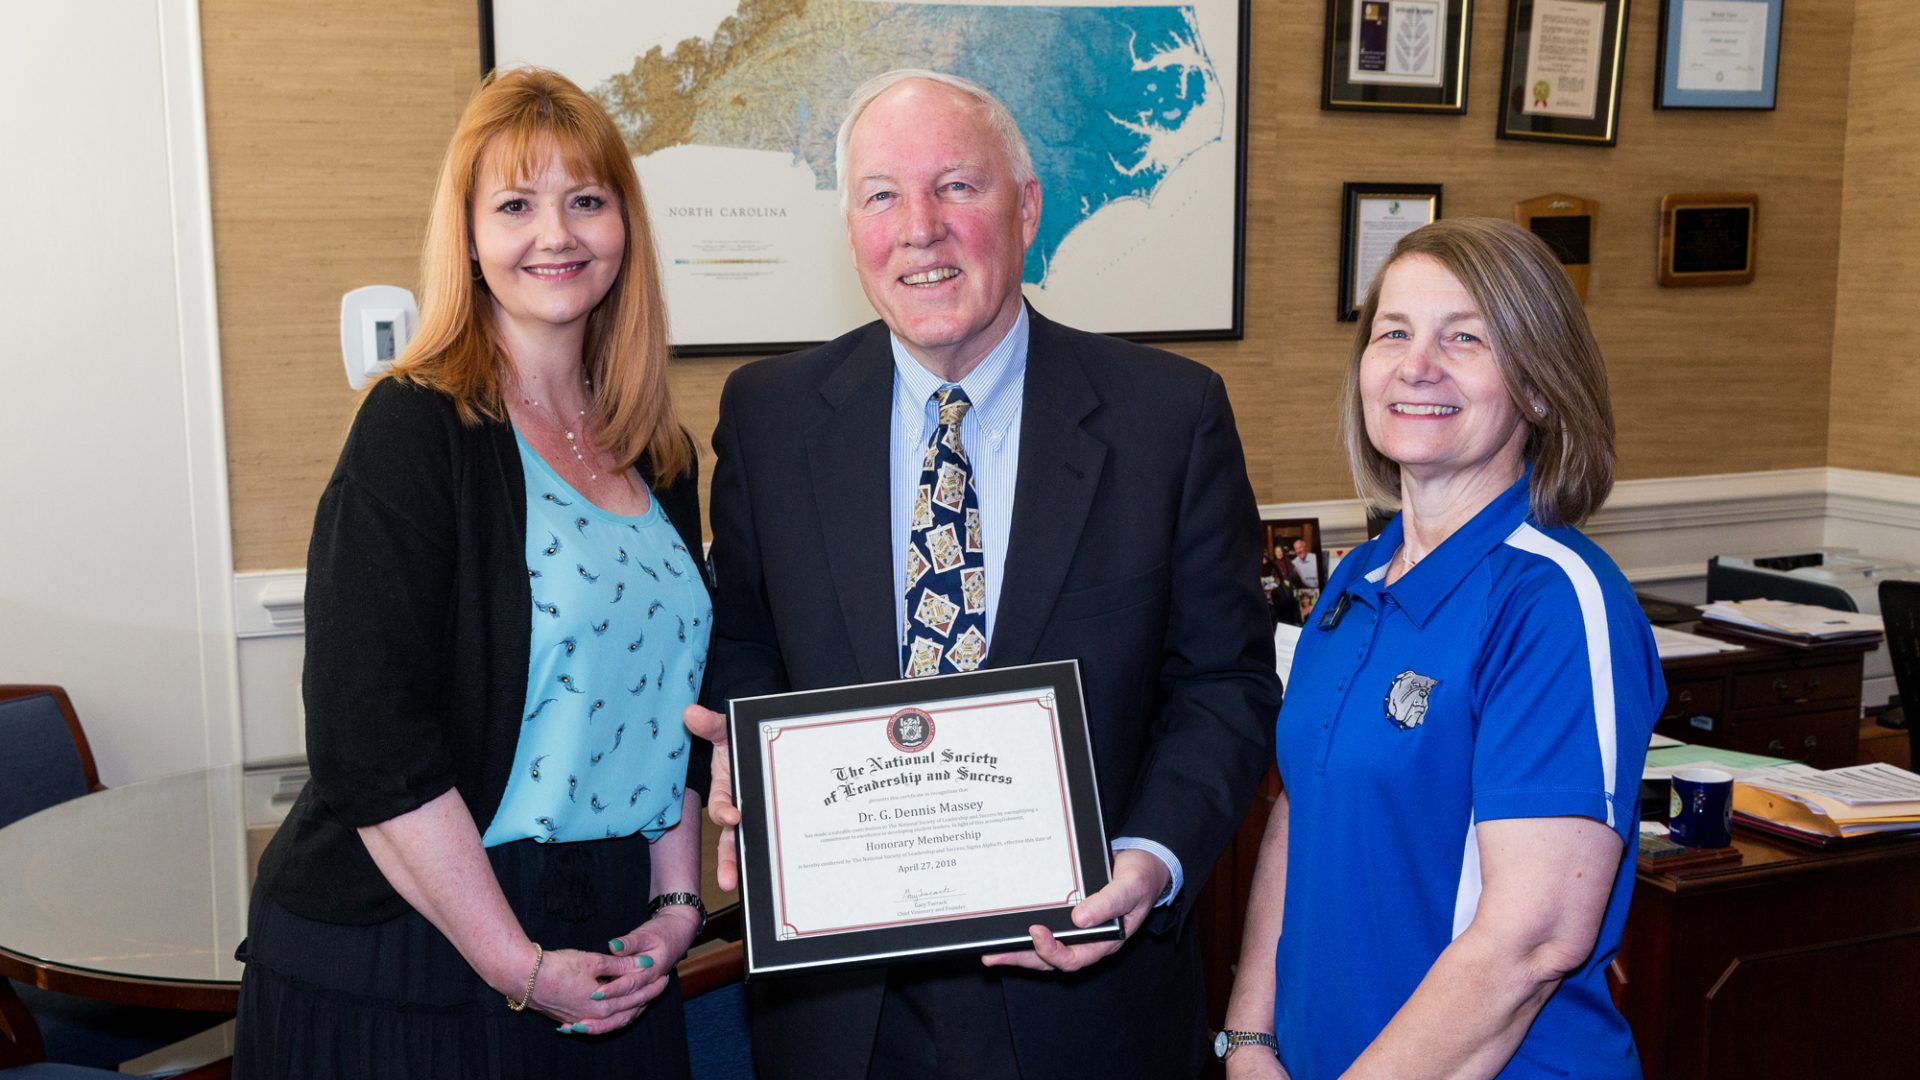 PCC's National Society of Leadership and Success chapter recently awarded honorary membership to retiring Pitt President G. Dennis Massey. Presenting the certificate were the college's NSLS advisors, Lynda Civils (left) and Faith Fagan, who was named the national leadership organization's Advisor of the Year just a week later.